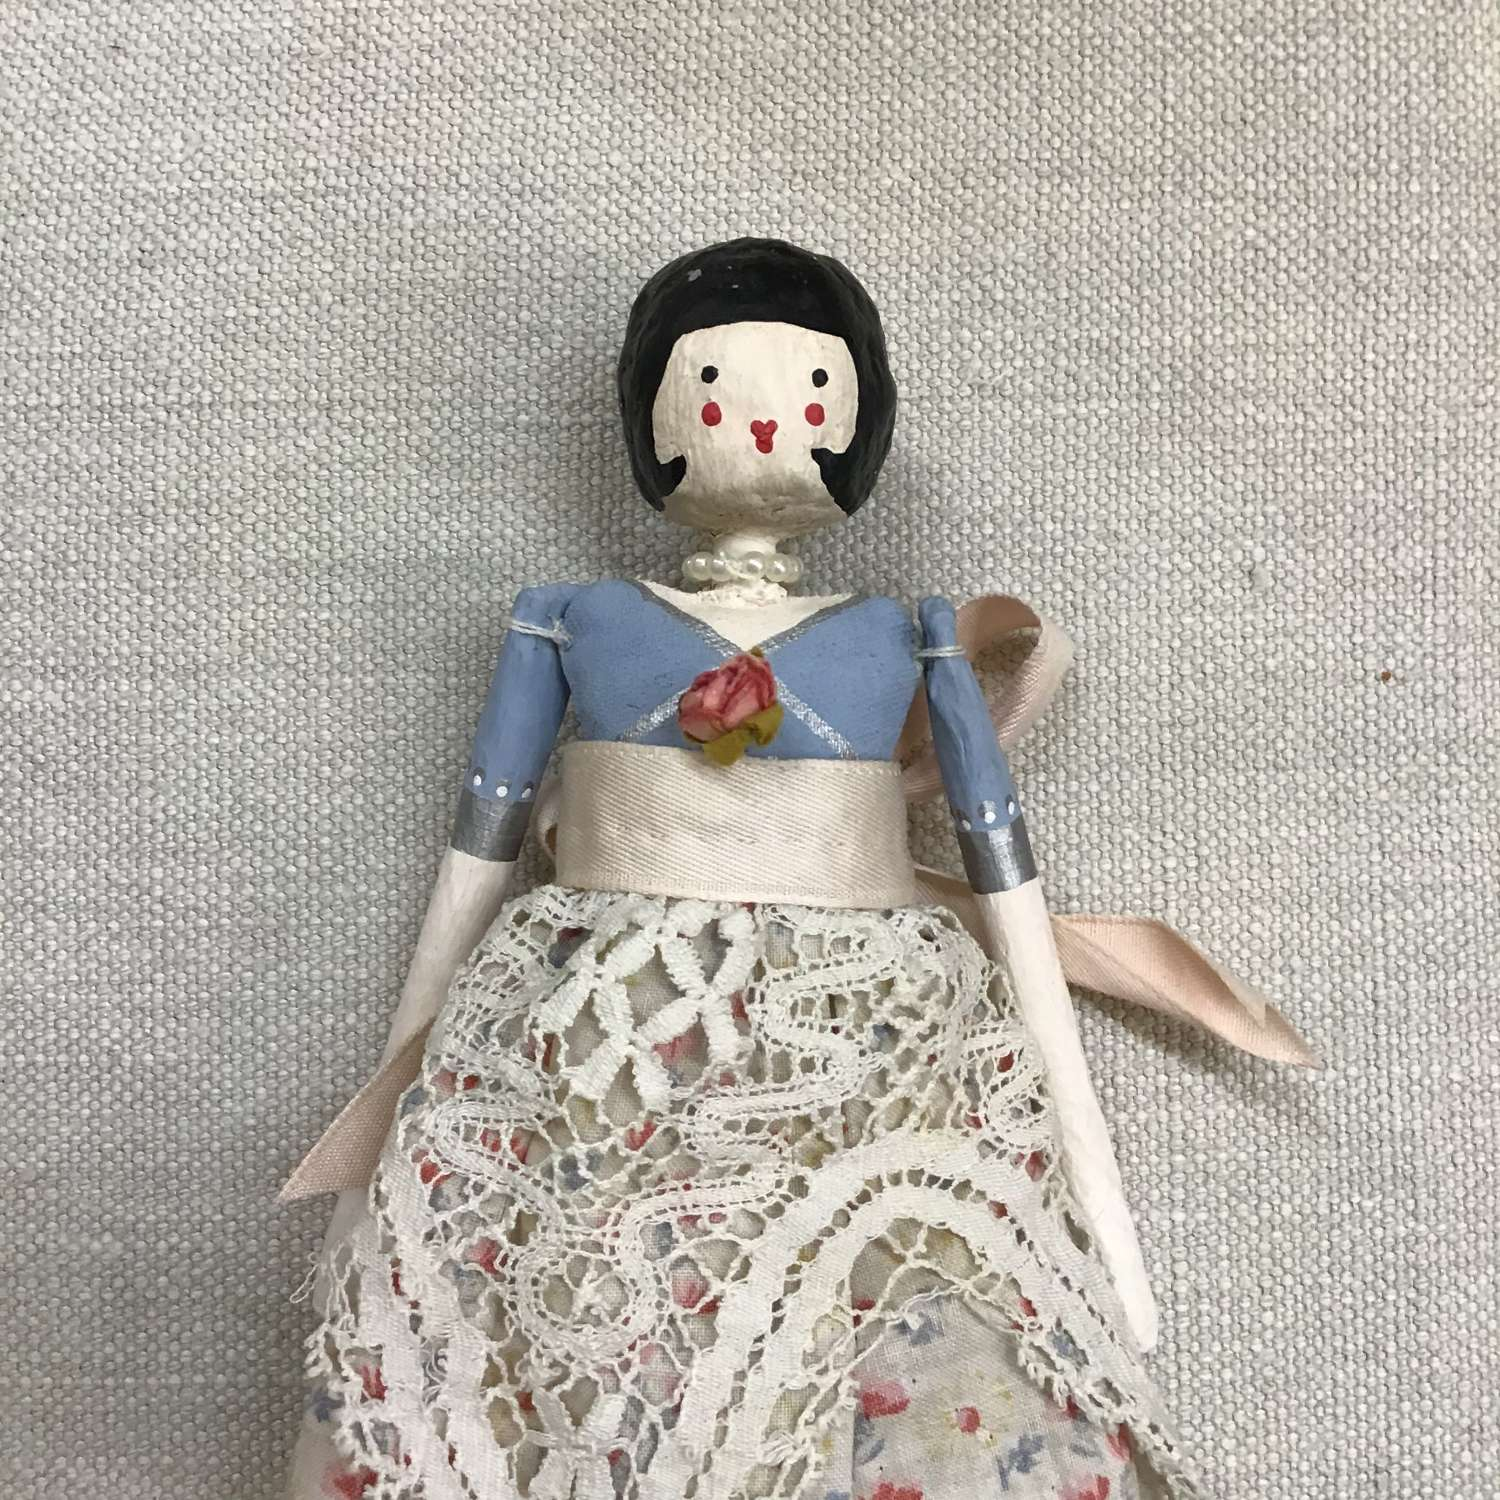 Hand crafted paper clay doll made with vintage fabric and trims